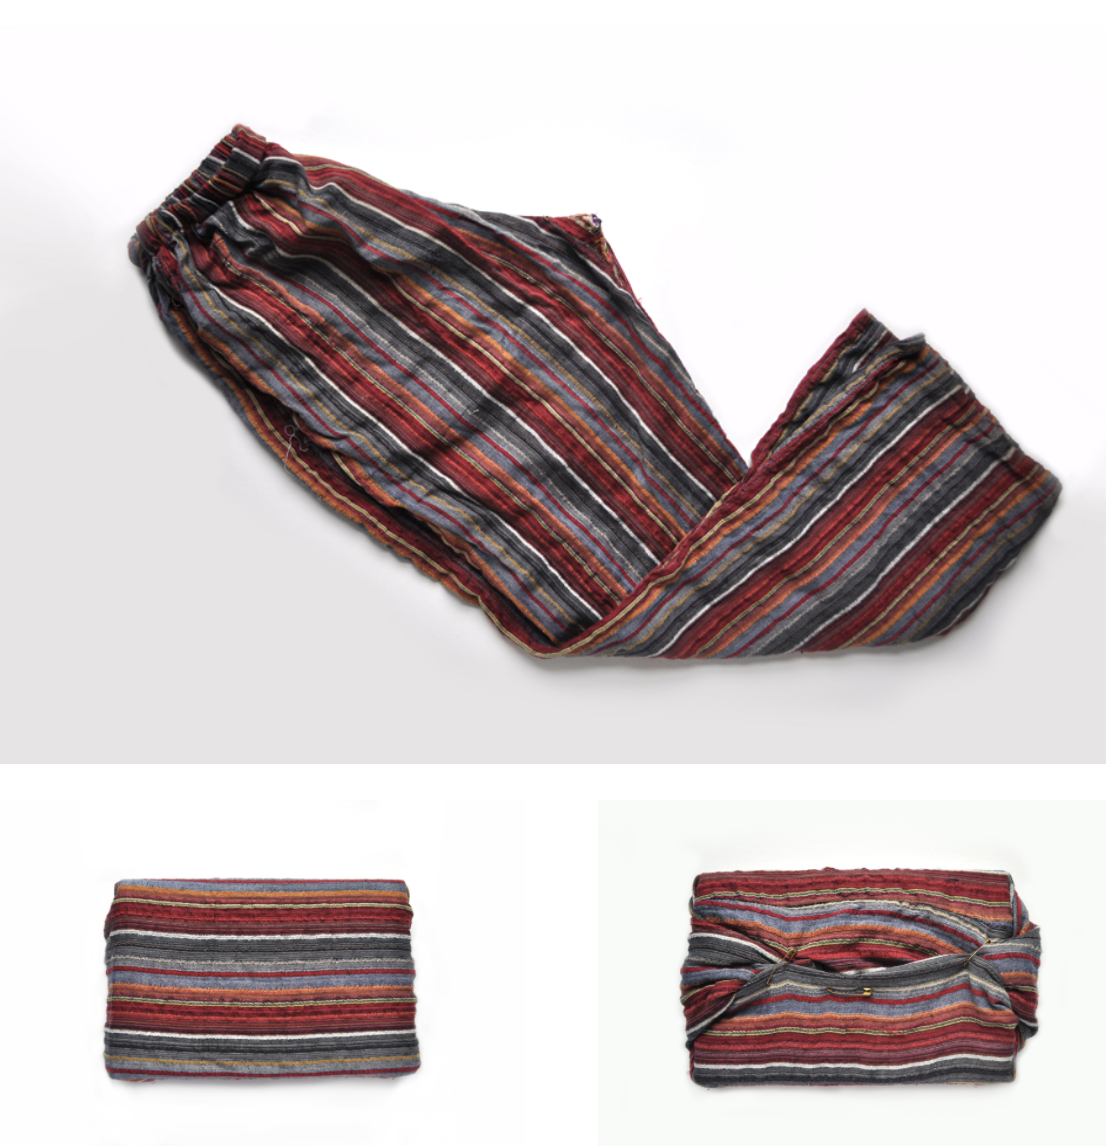 Images of gift wrap made out of old colorful pants with stripes on them